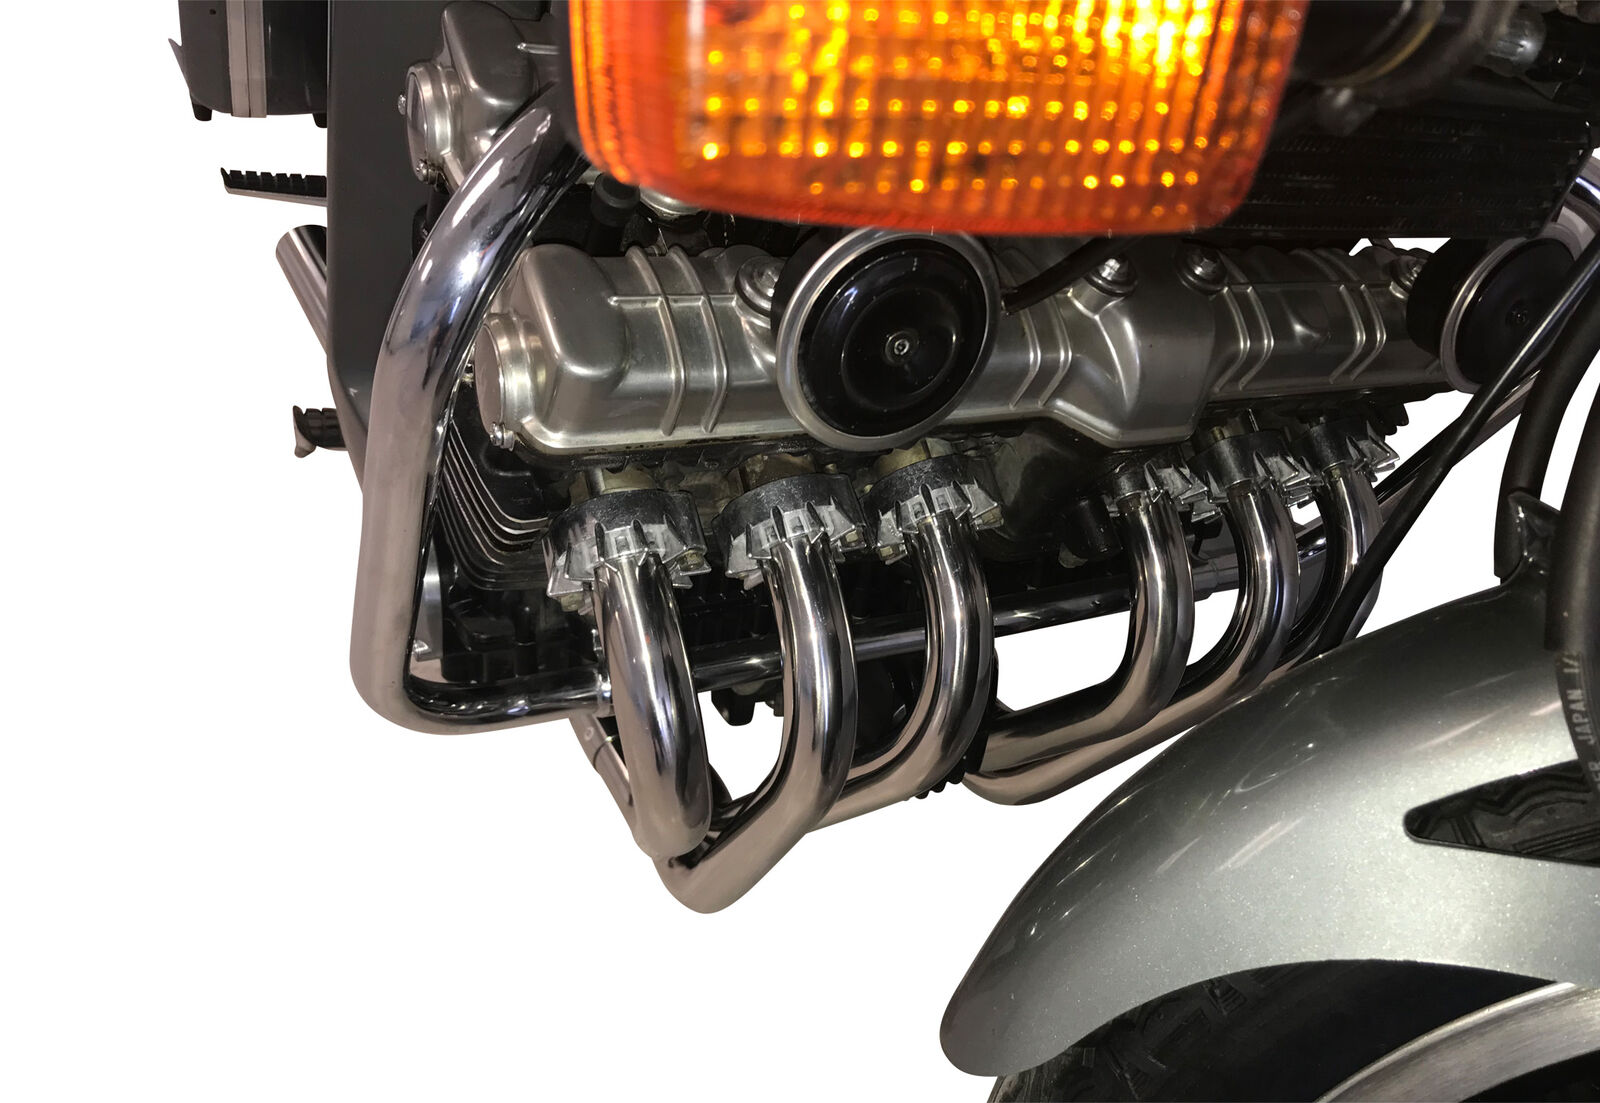 Delkevic Twin Shock Full Chrome Exhaust System 1979 1980 CBX1000 RESTORE YOUR CBX TODAY!